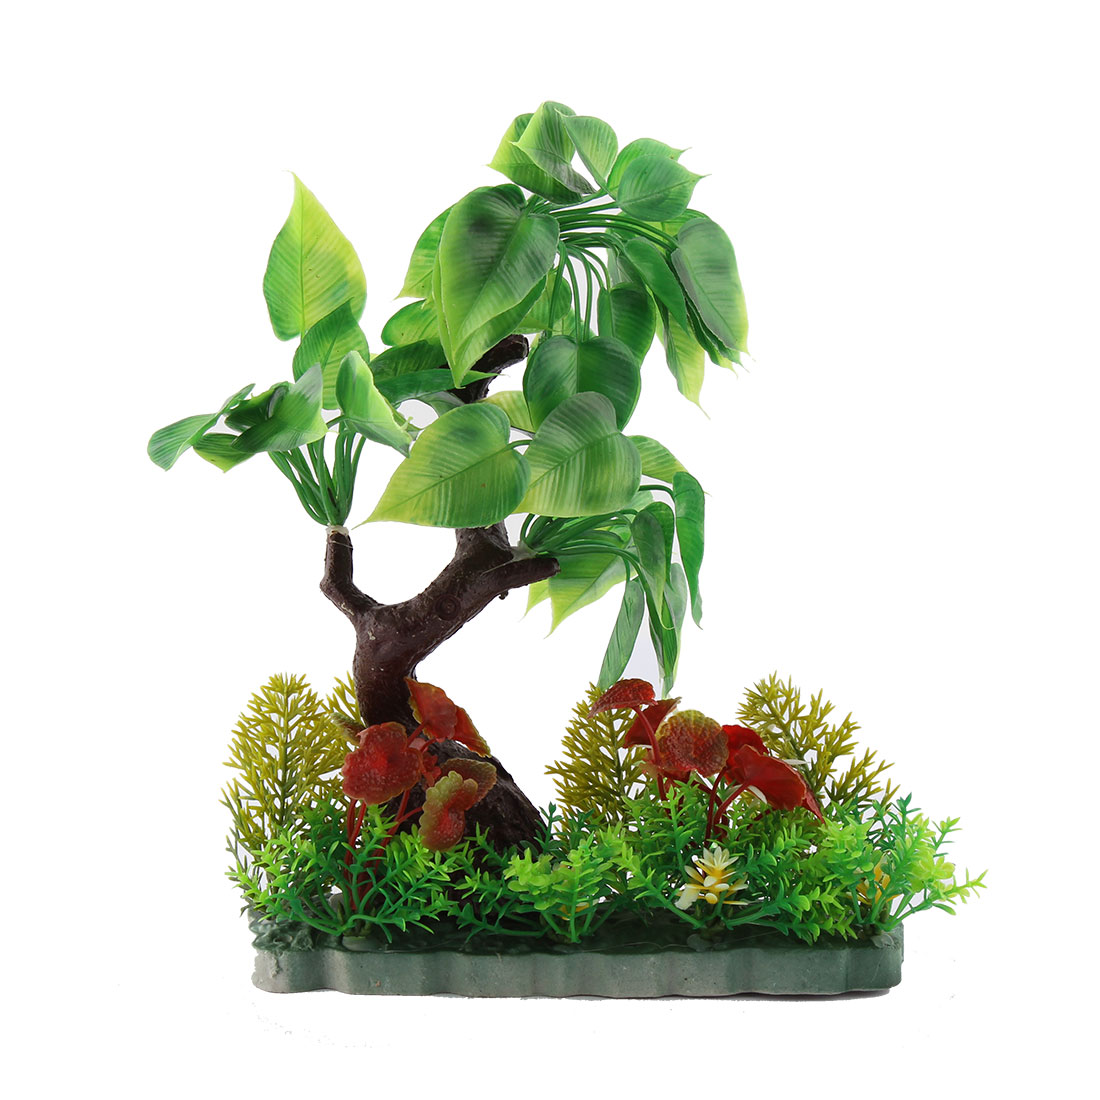 Aquarium Stone Base Plastic Artificial Underwater Tree Plant Decor 28cm Height